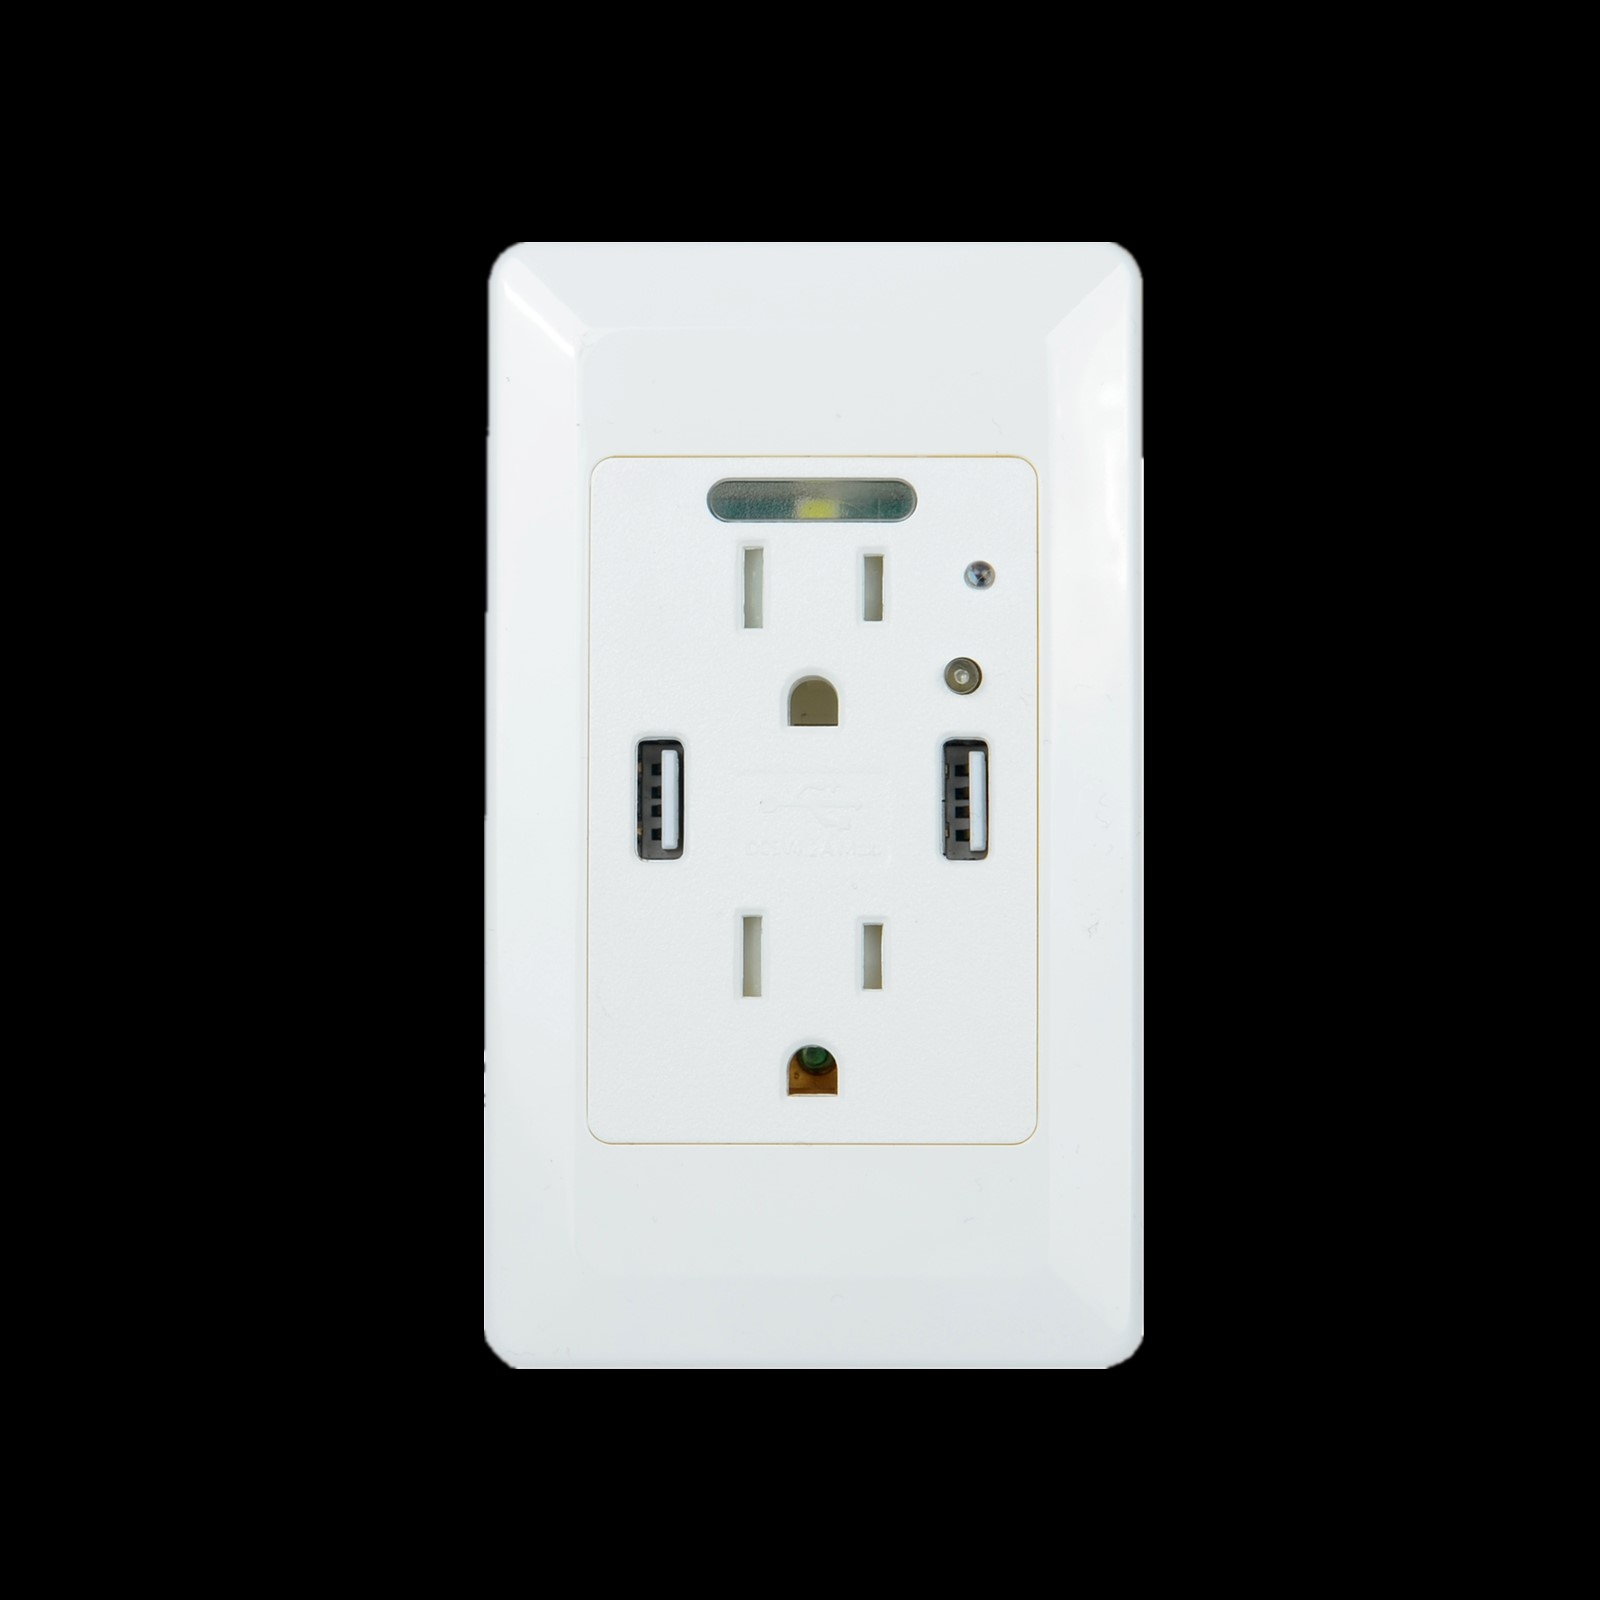 2 USB Ports 4.2A Smart Fast Charging Socket Wall Outlet with LED ...